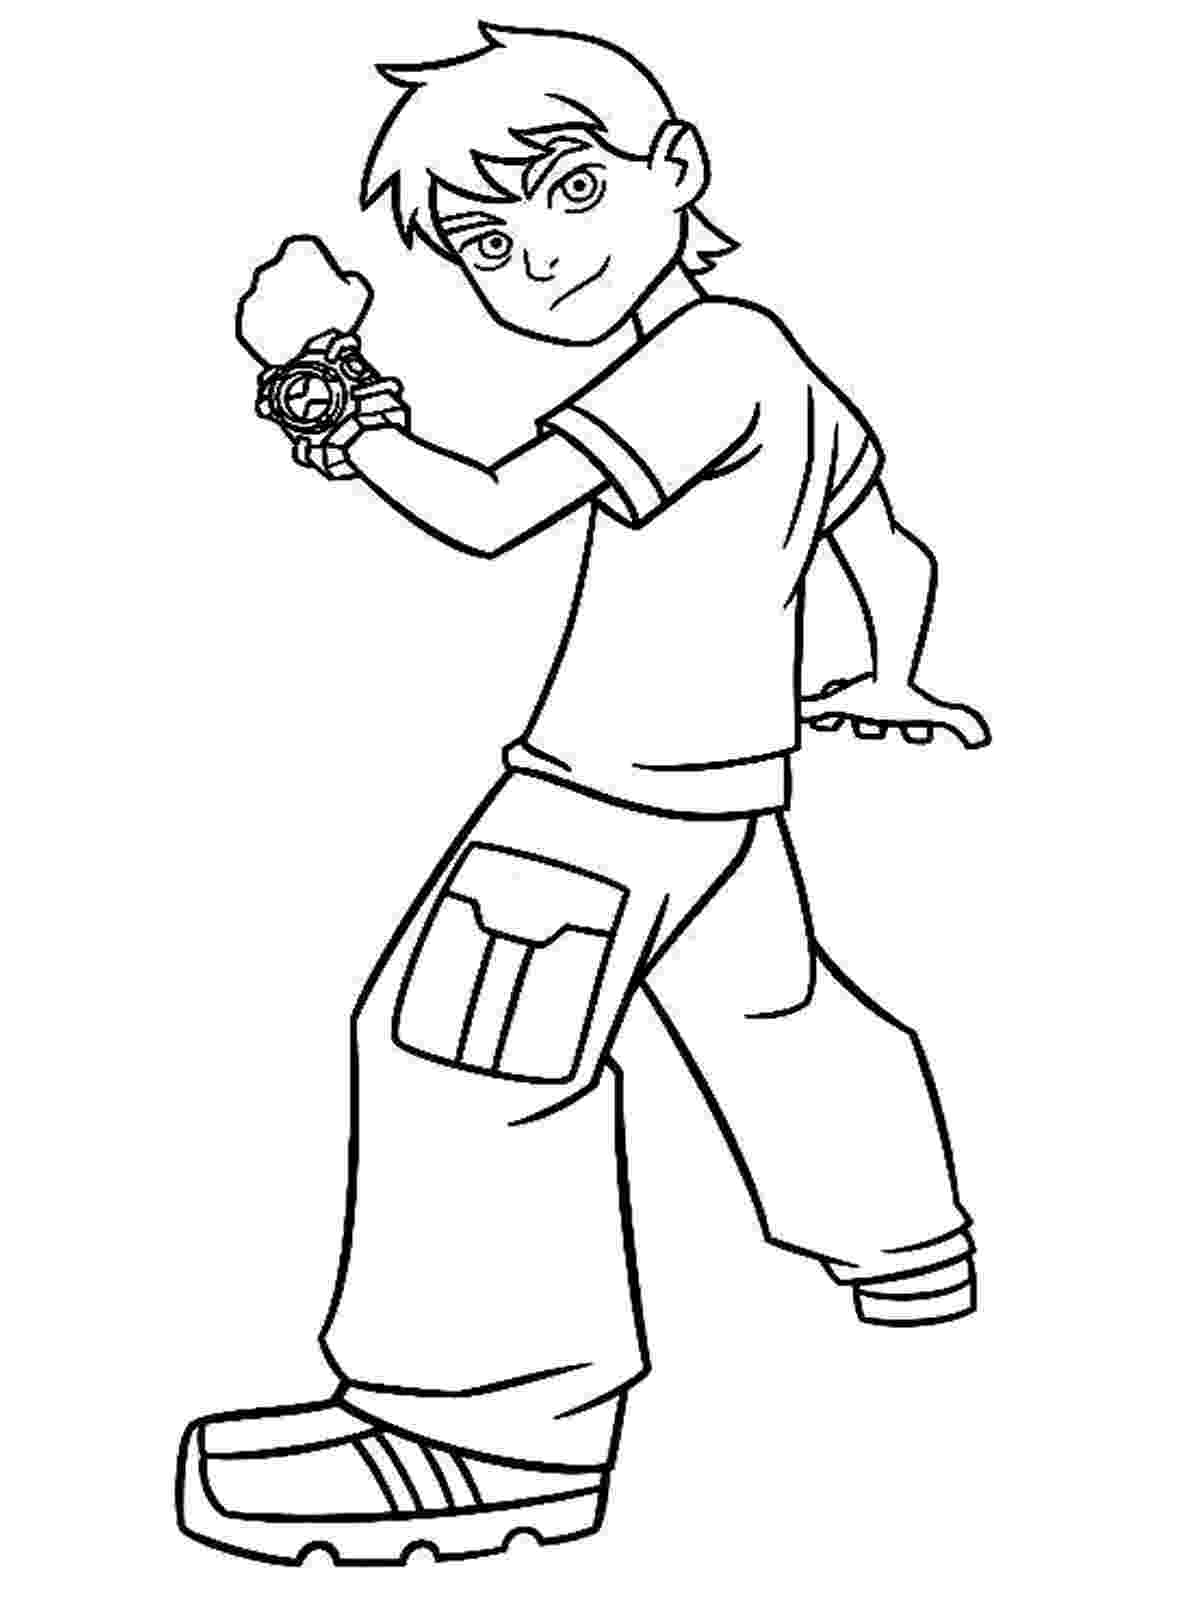 ben 10 coloring pages ben 10 coloring pages ben coloring 10 pages